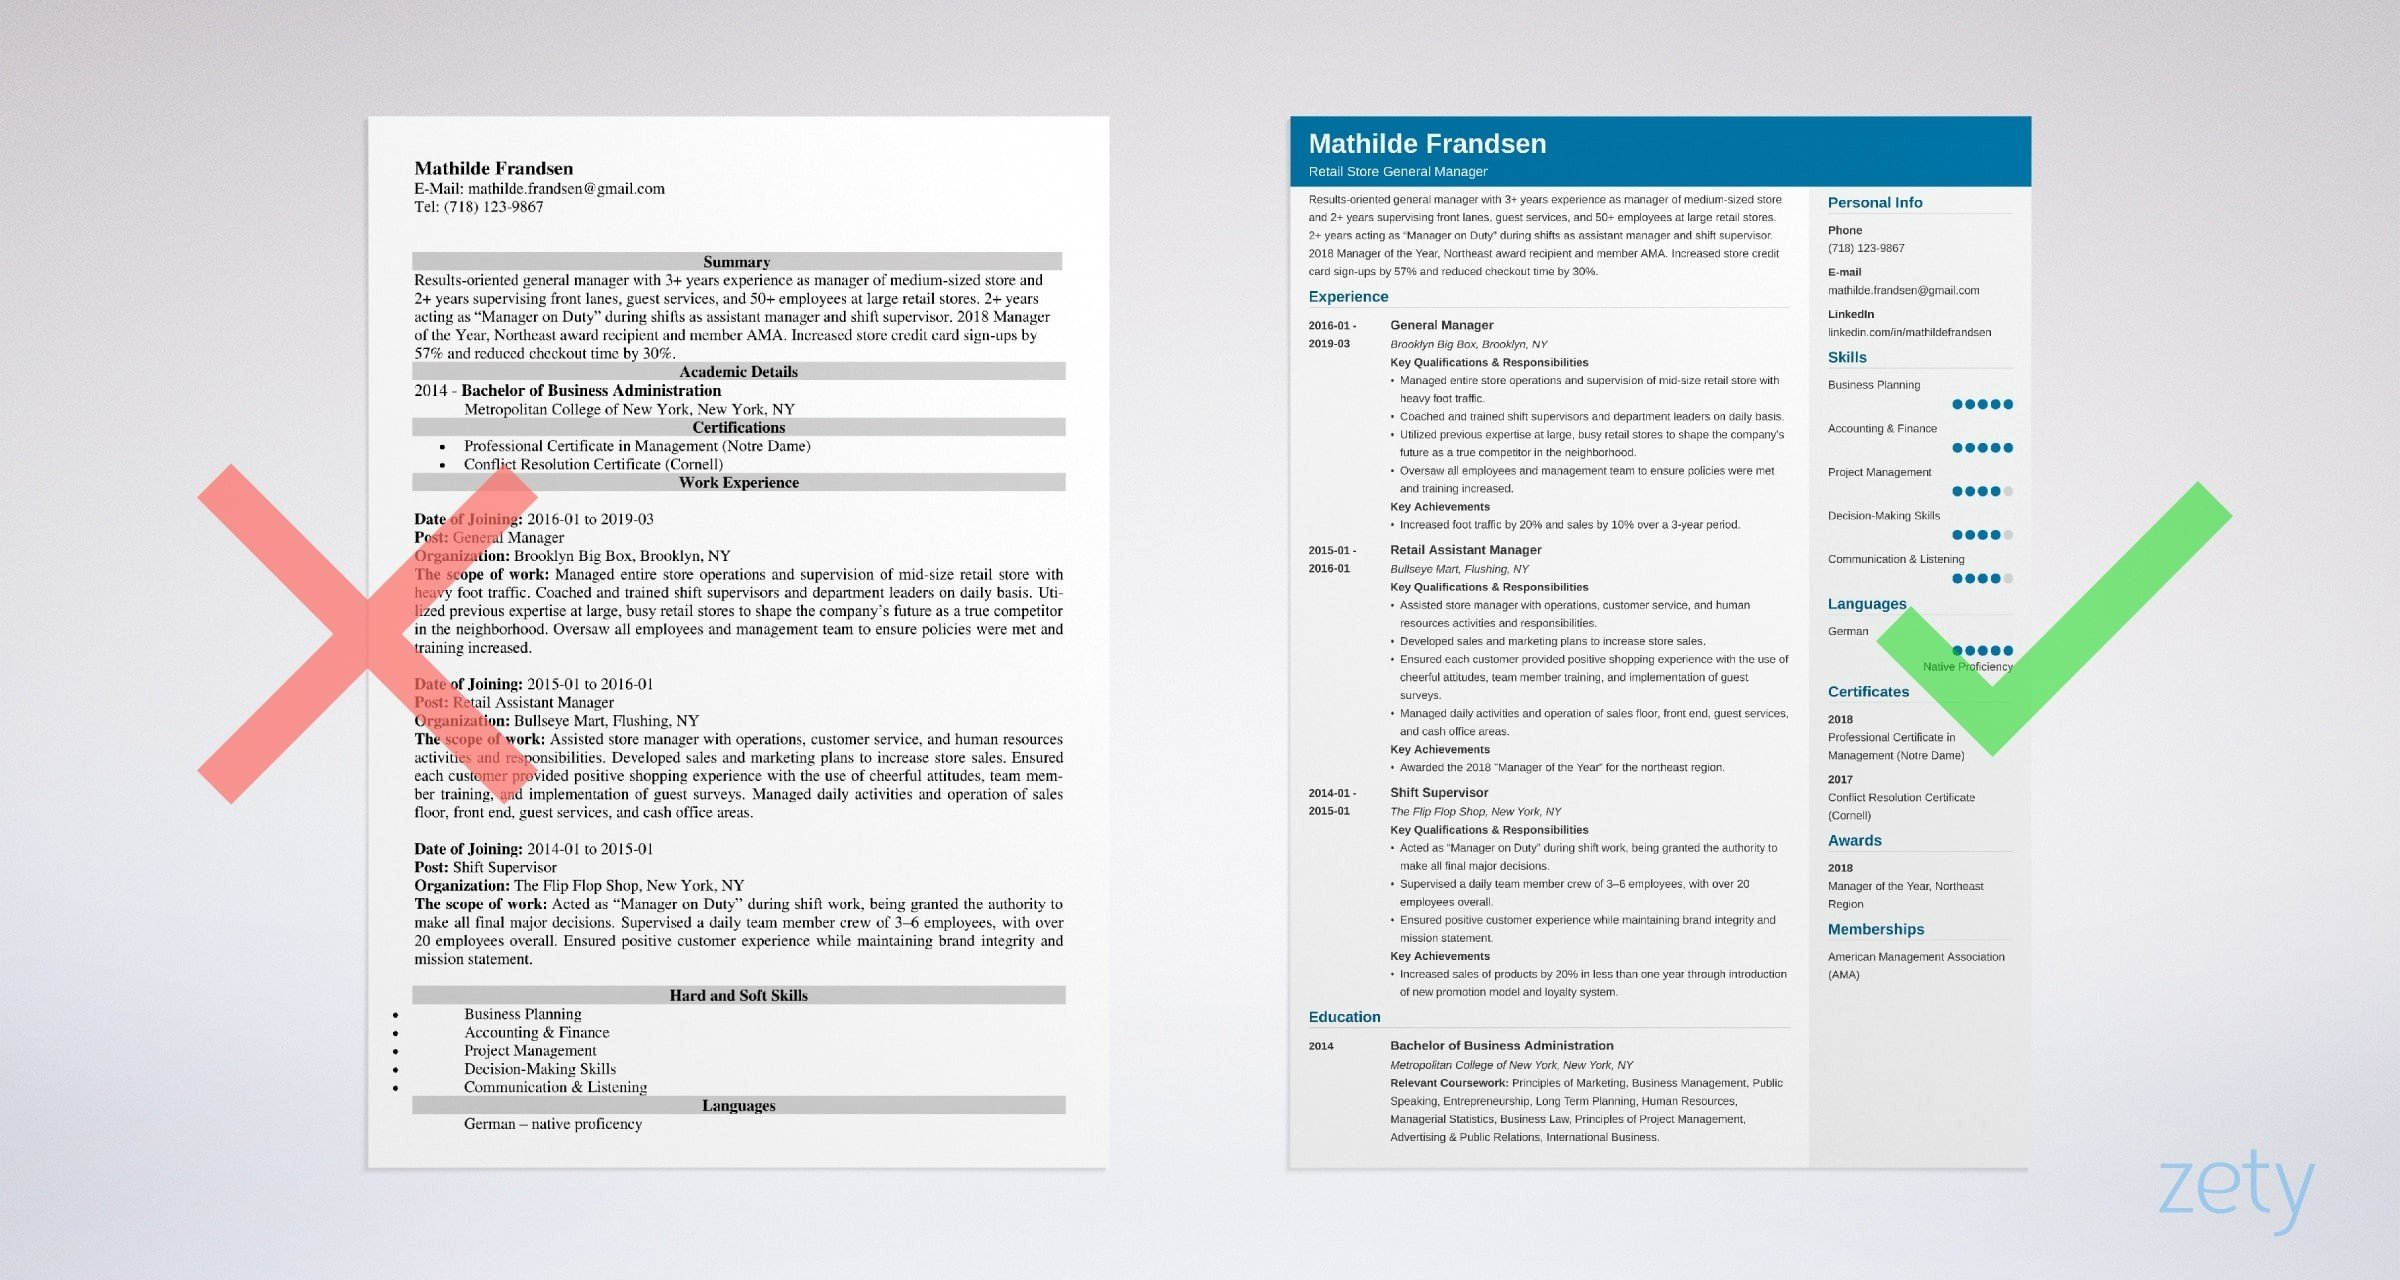 general manager resume template guide examples hotel example professional soccer coach Resume Hotel General Manager Resume Template